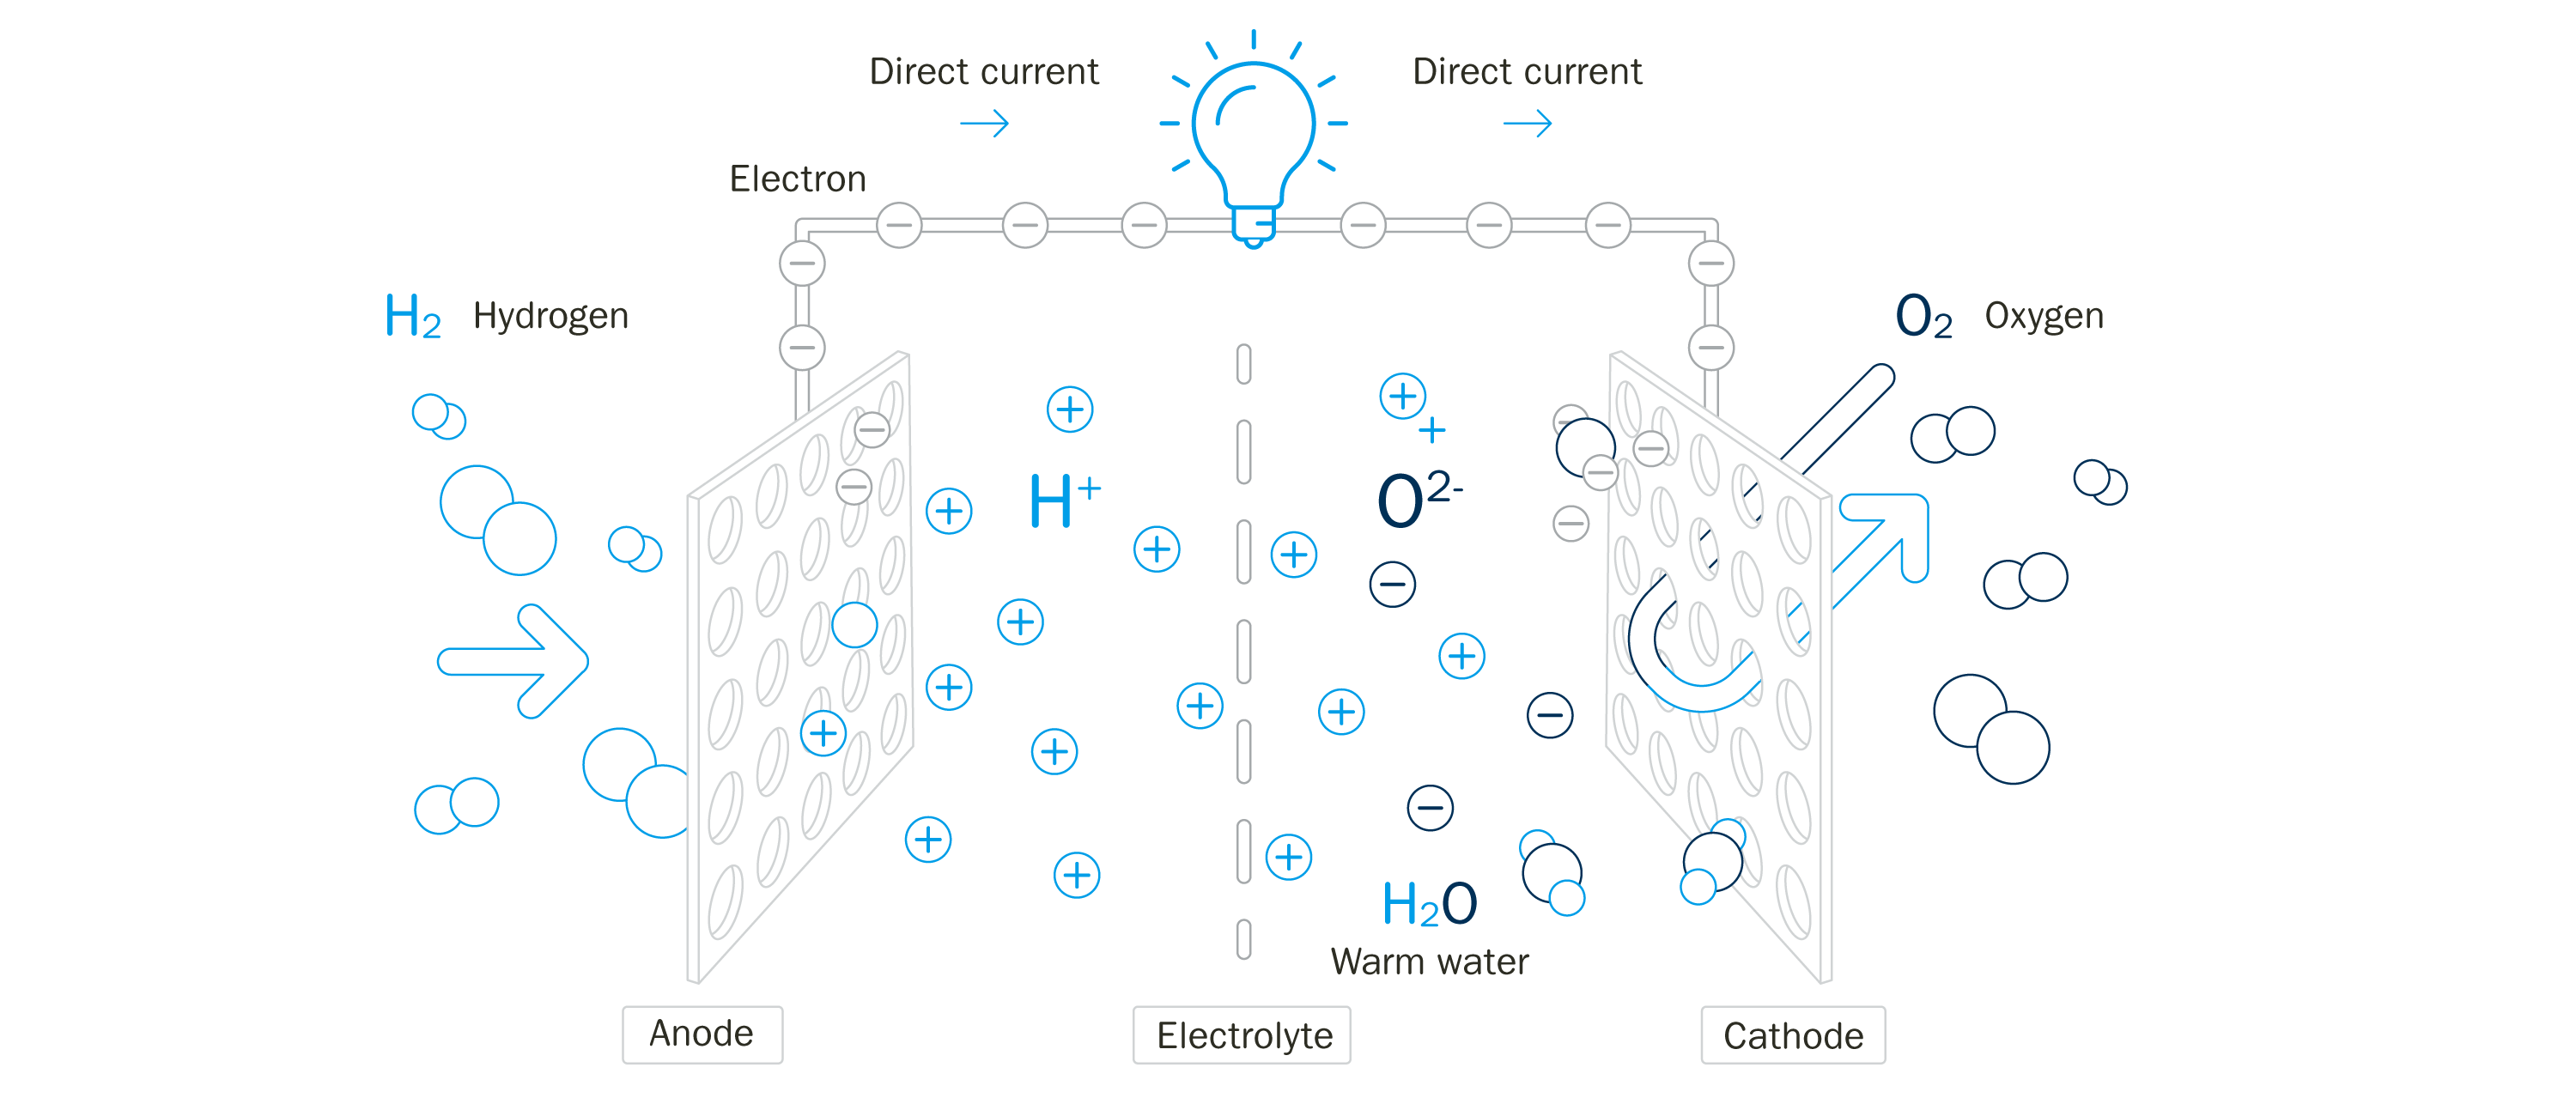 Operating principle of a fuel cell